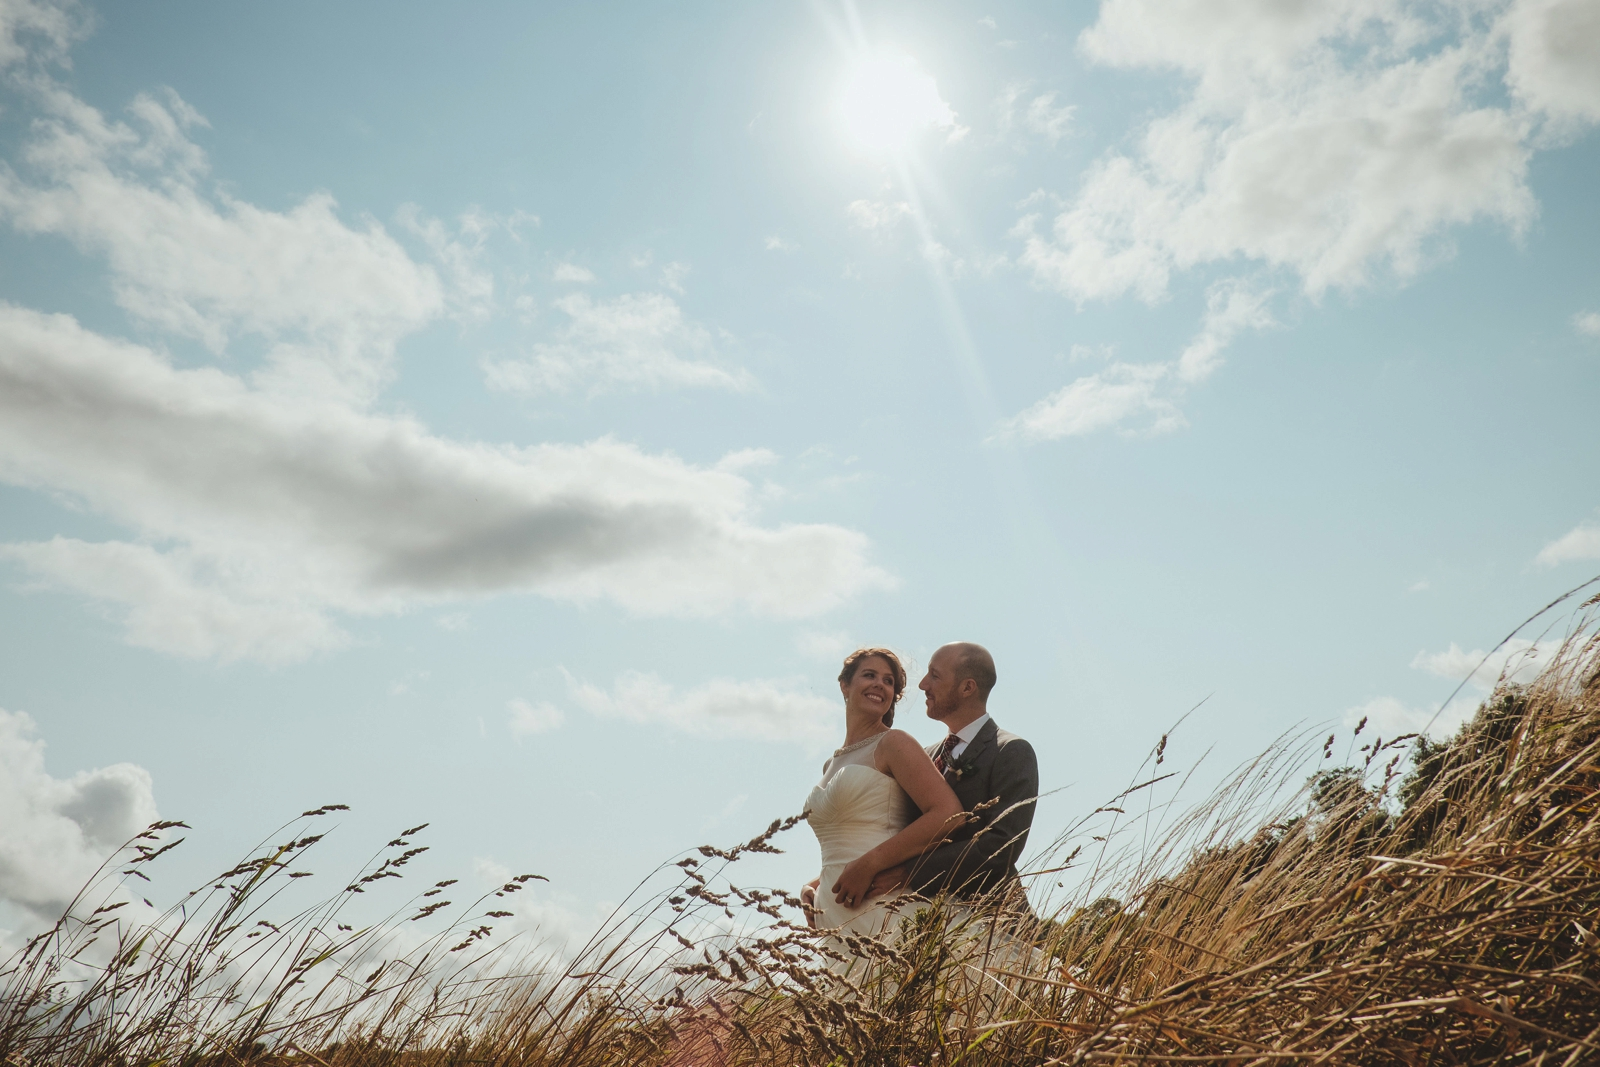 Angela___Andy_s_Edinburgh_elopement_by_Barry_Forshaw_0256.jpg